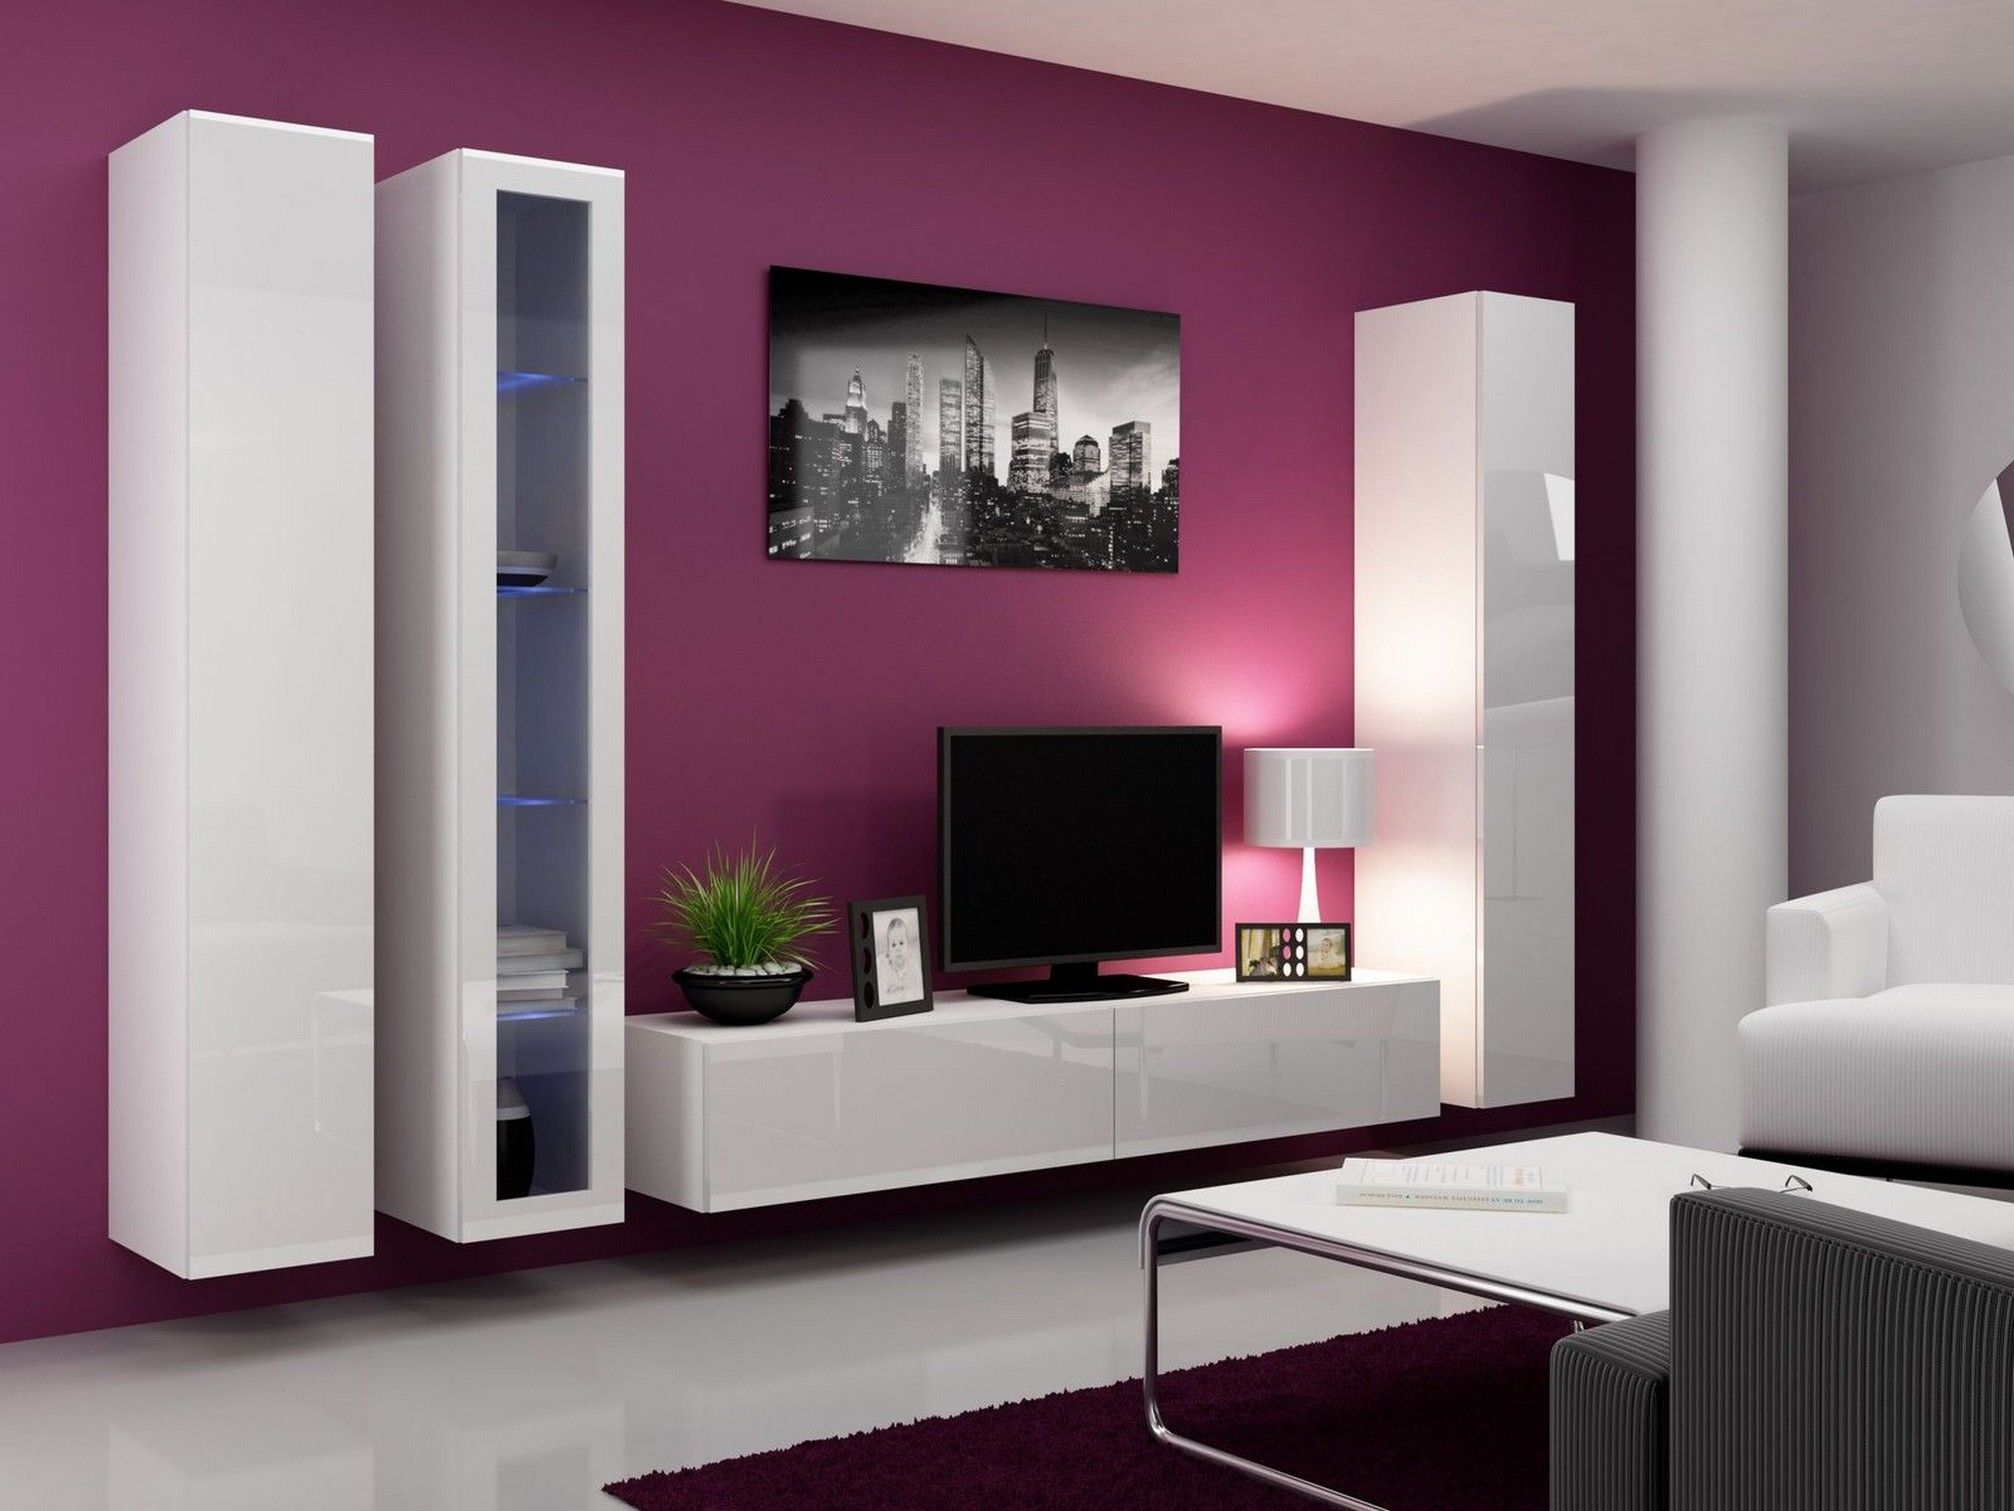 Meuble Tv Chloe Design Furniture Design Pink Color Schemes Ideas For Living Room Unique